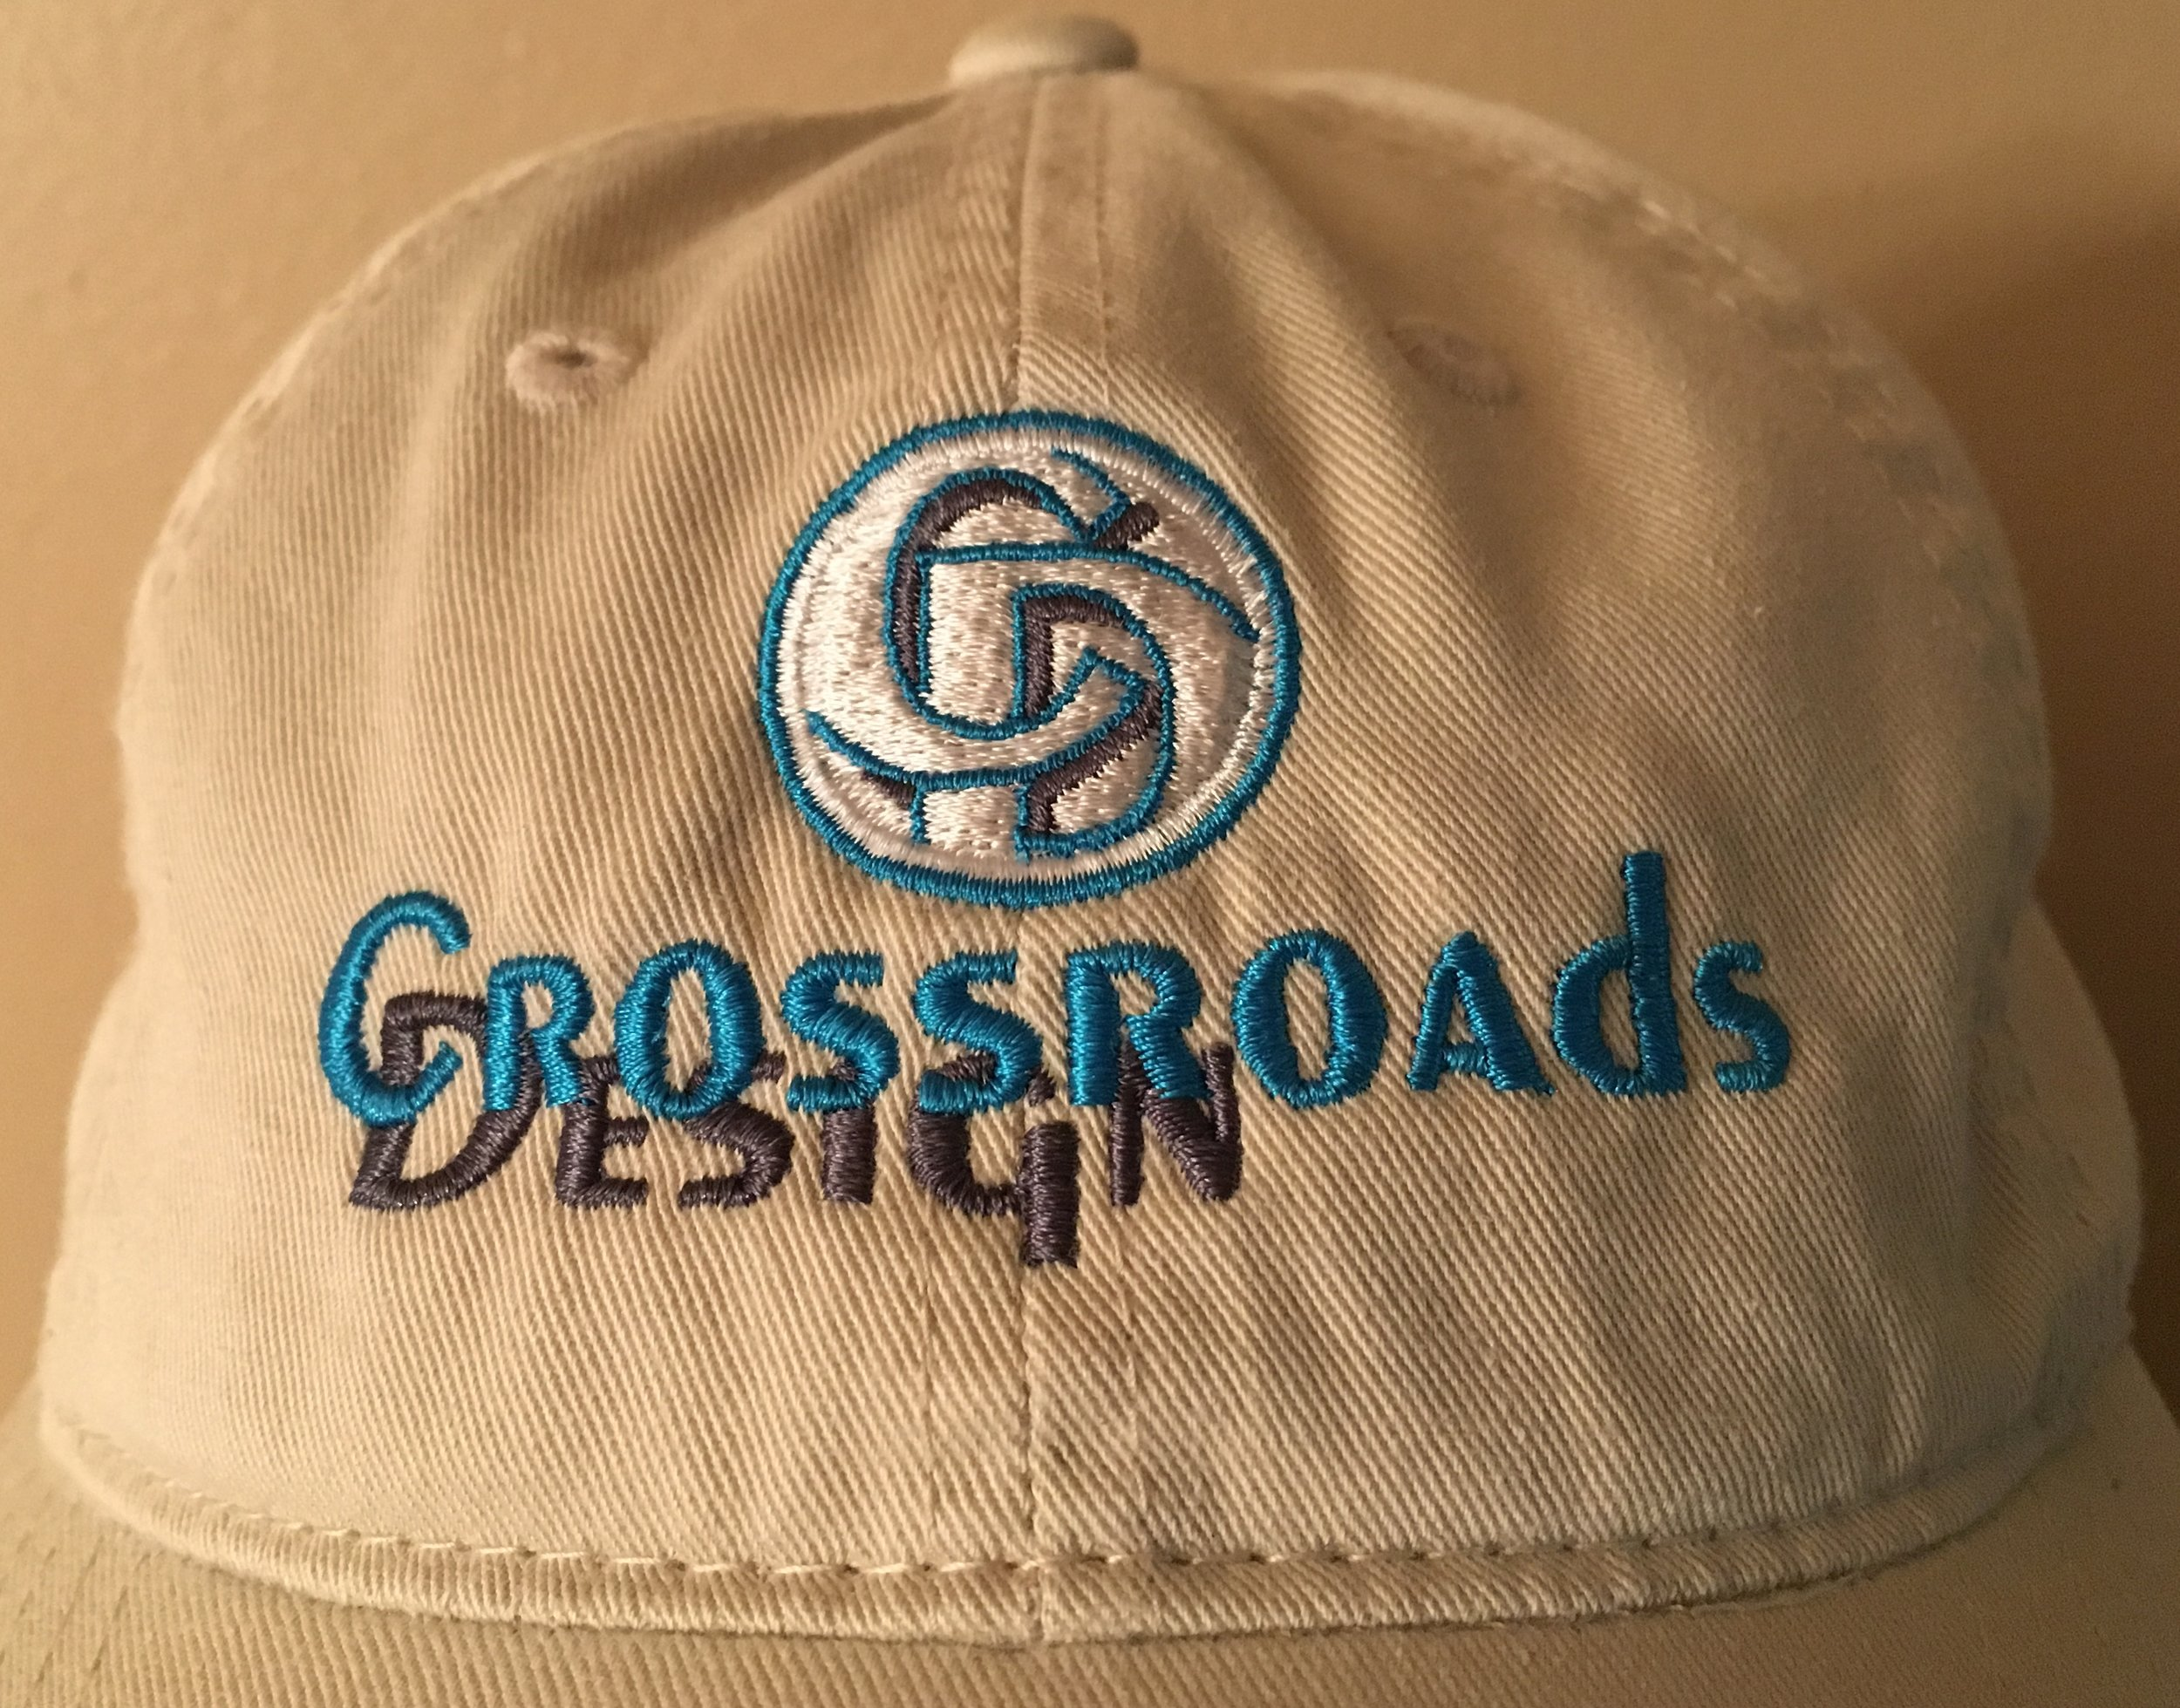 - Creating good looking, smooth-running embroidery designs specialized for your garment.